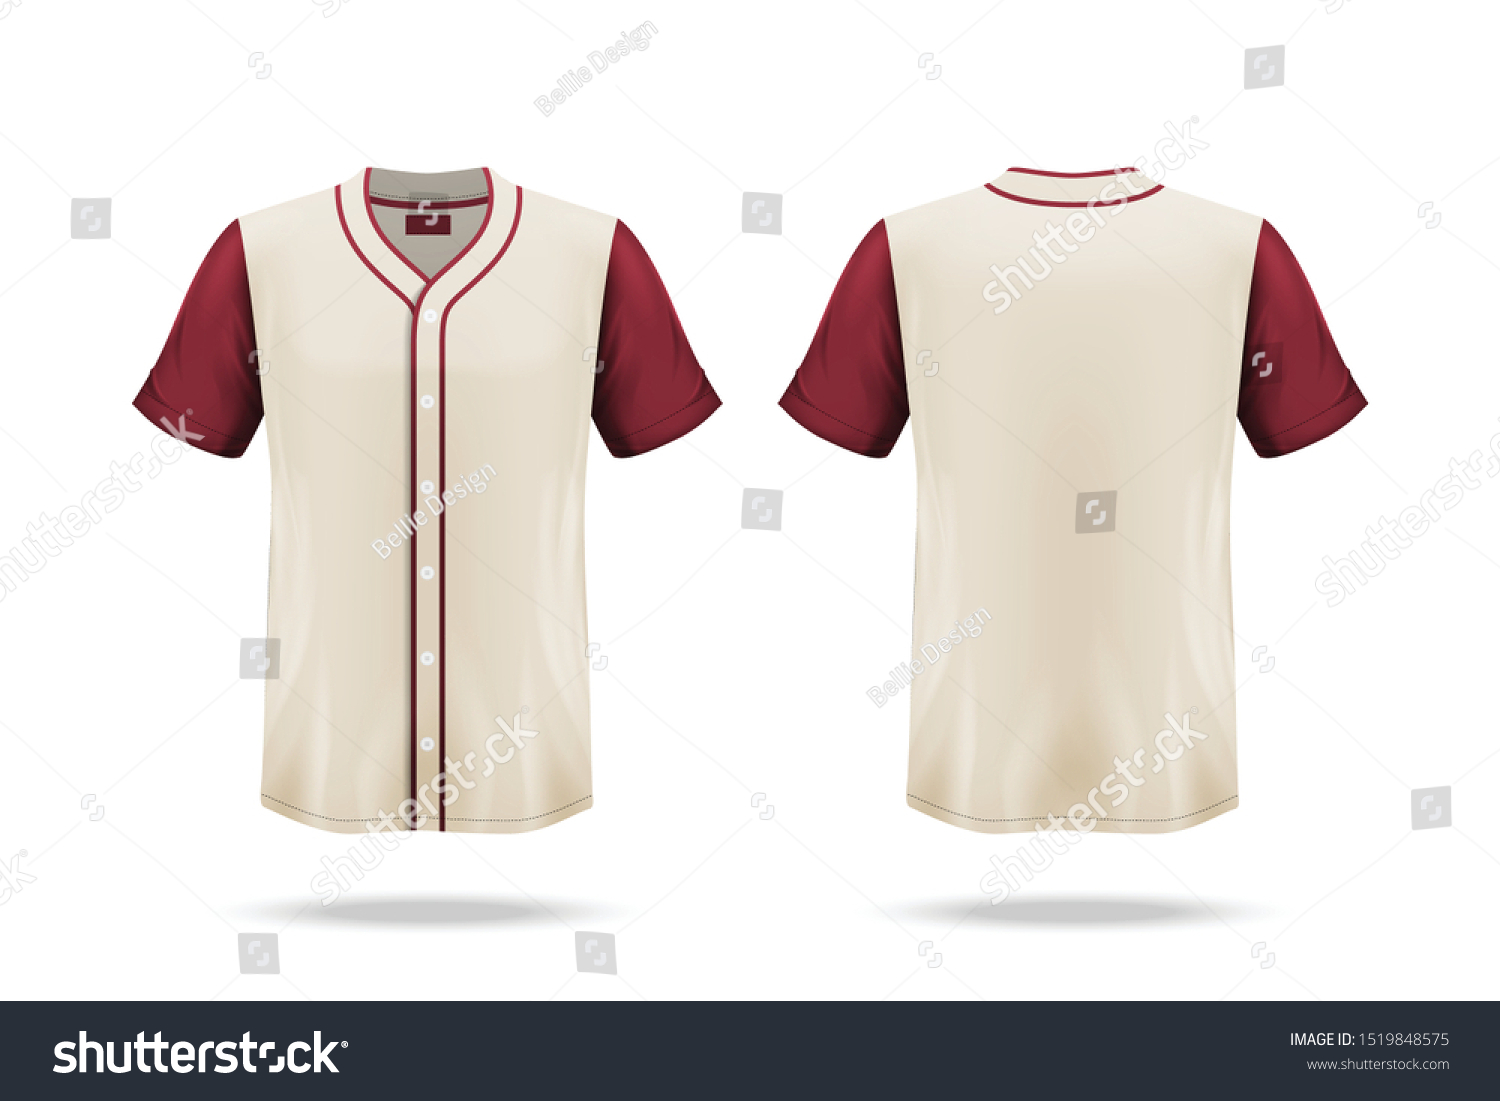 Specification Baseball Jersey T Shirt Mockup Stock Image